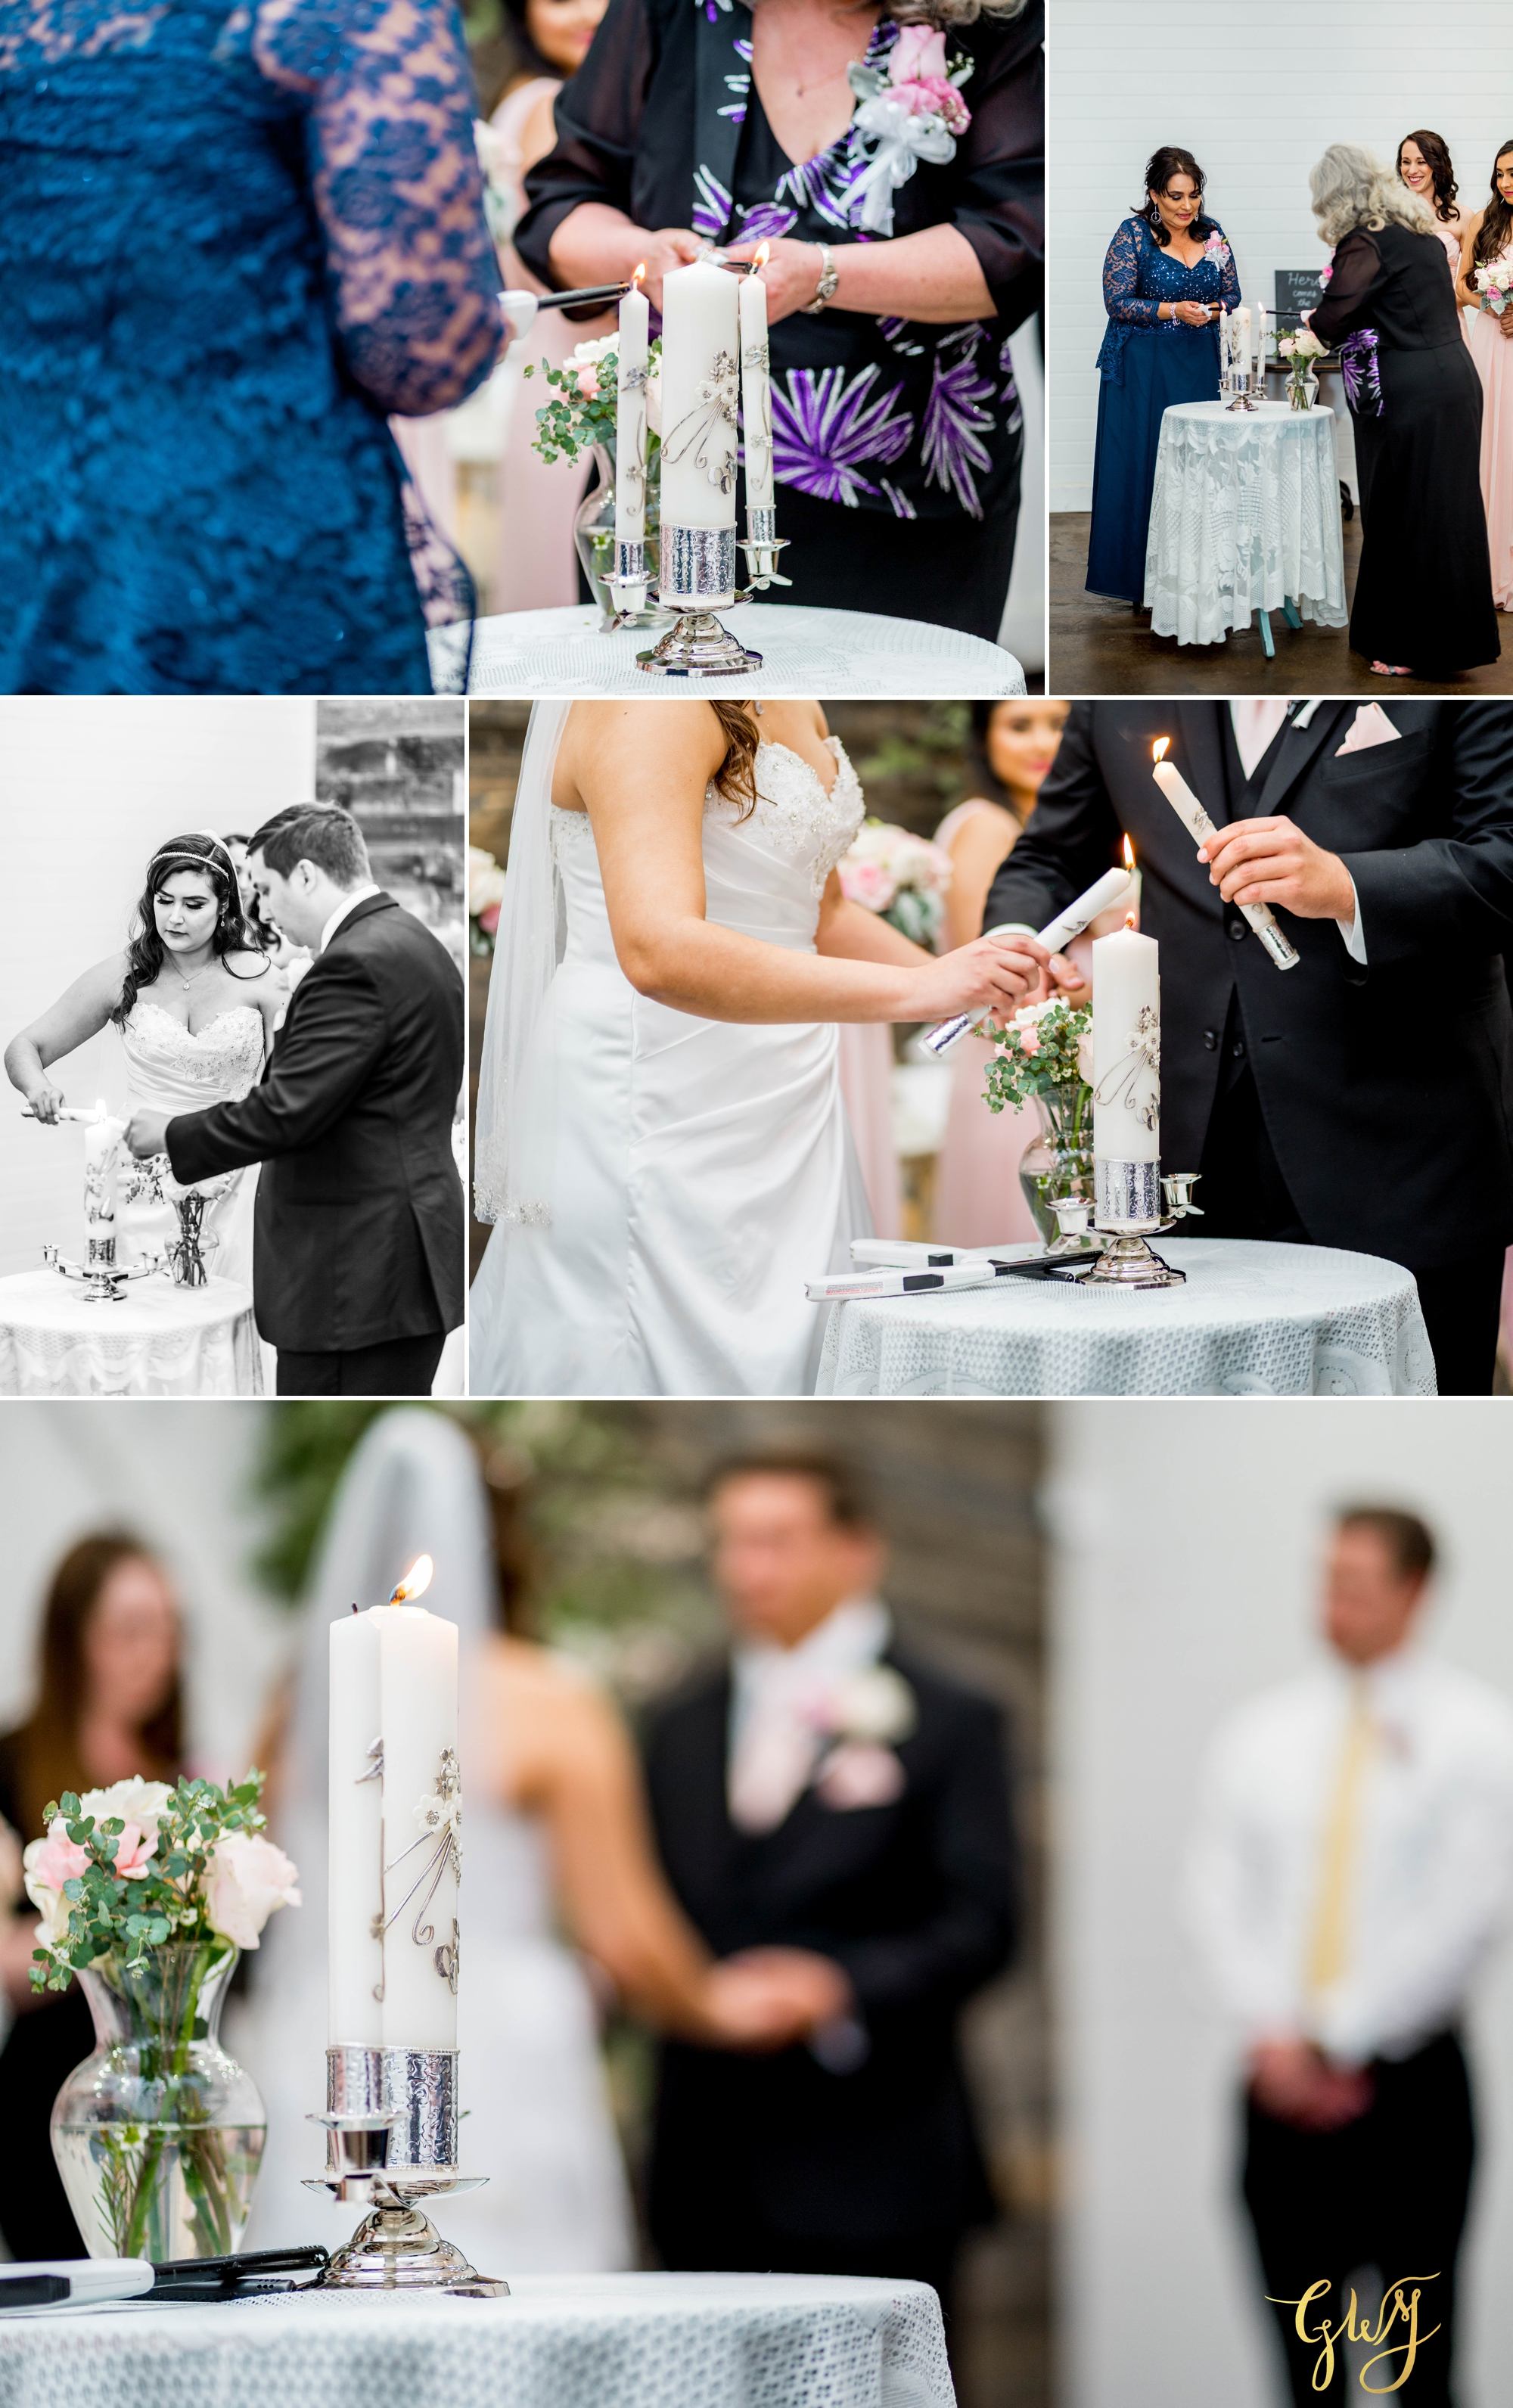 Josef + Sabrina's Vintage Rose Fairytale Spring Wedding by Glass Woods Media 26.jpg